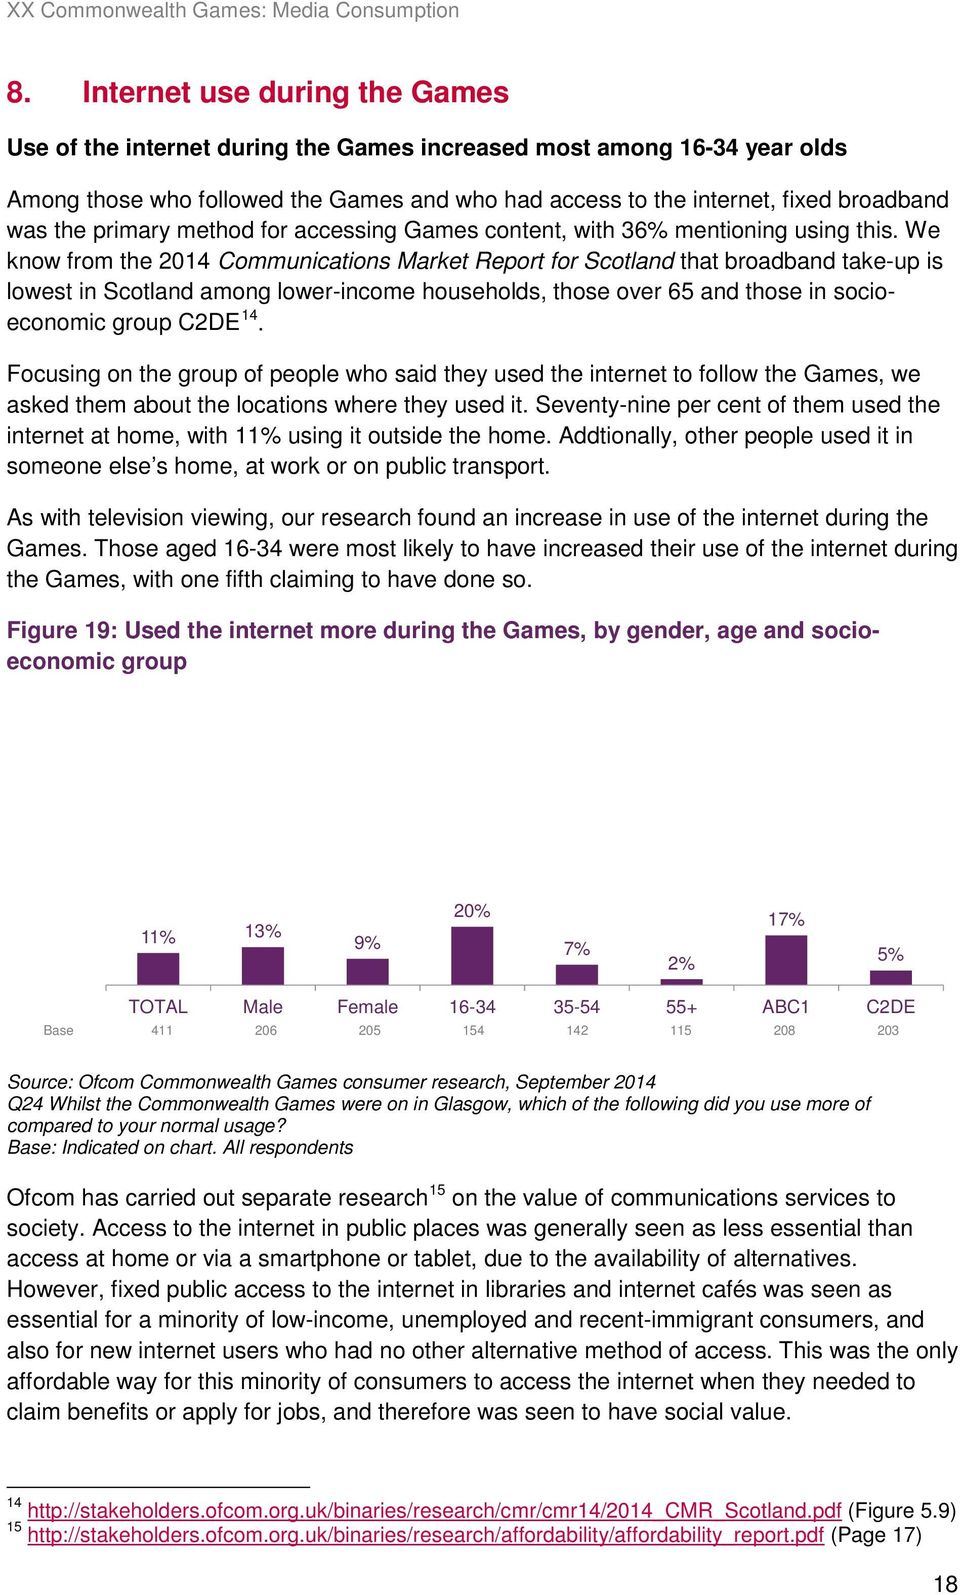 We know from the 2014 Communications Market Report for Scotland that broadband take-up is lowest in Scotland among lower-income households, those over 65 and those in socioeconomic group C2DE 14.